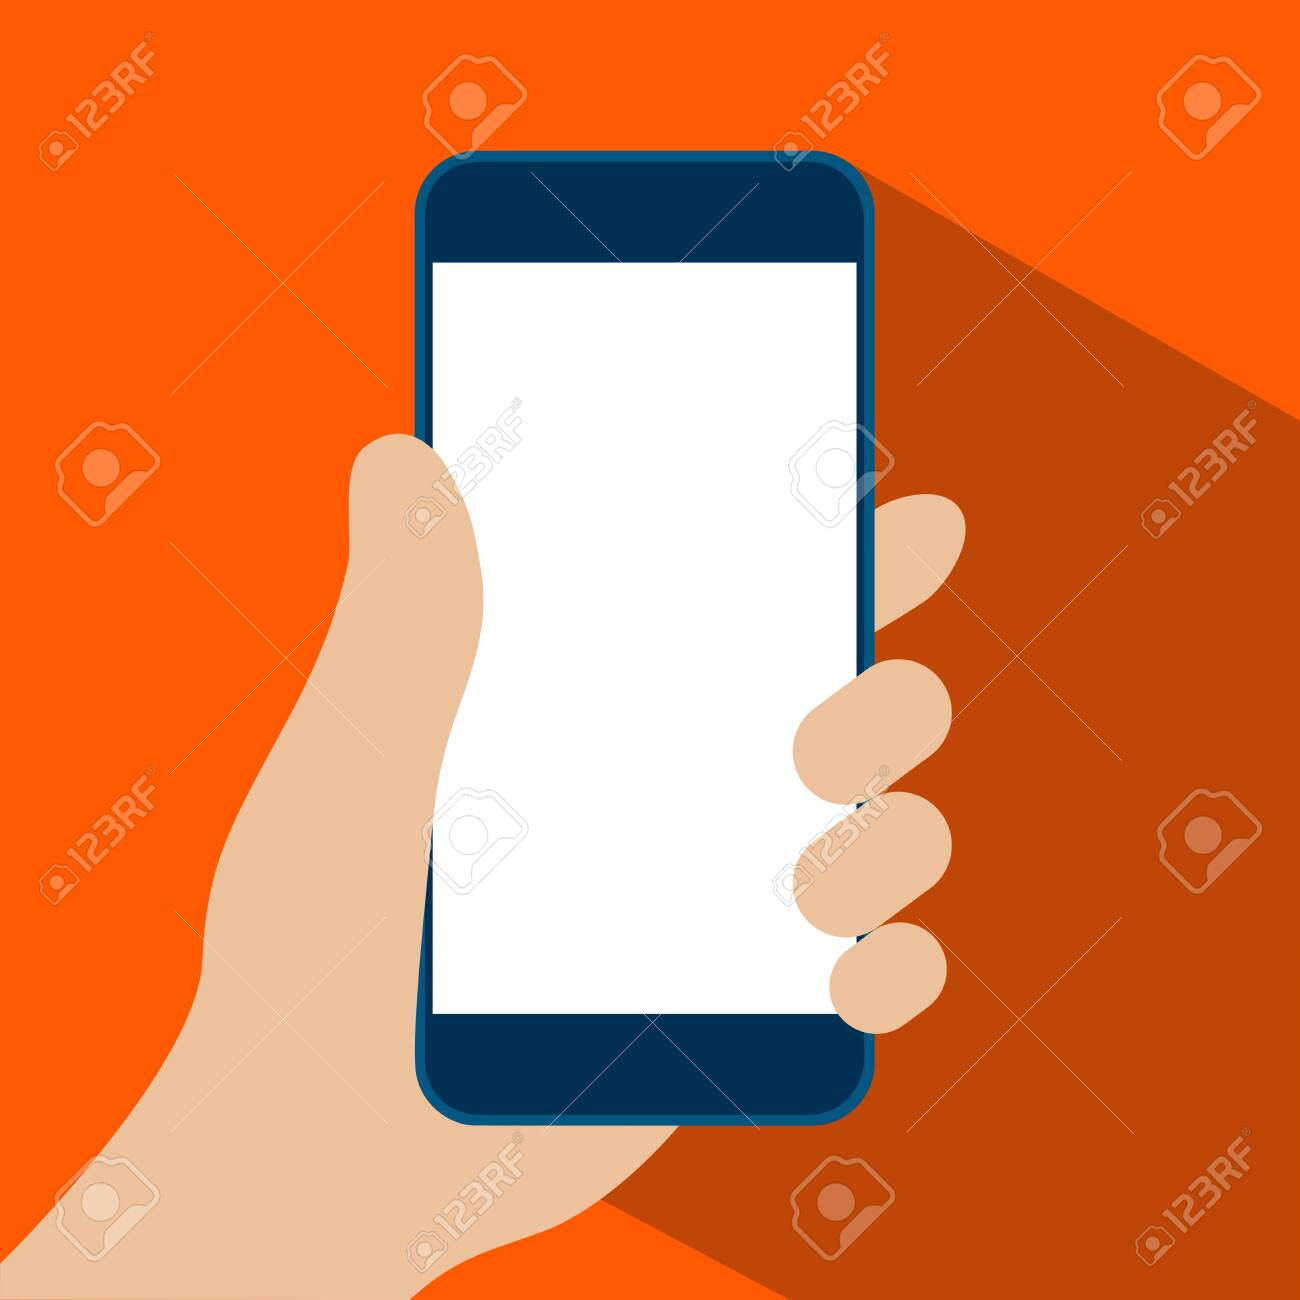 smart phone in hand icon vector illustration. - 150943864